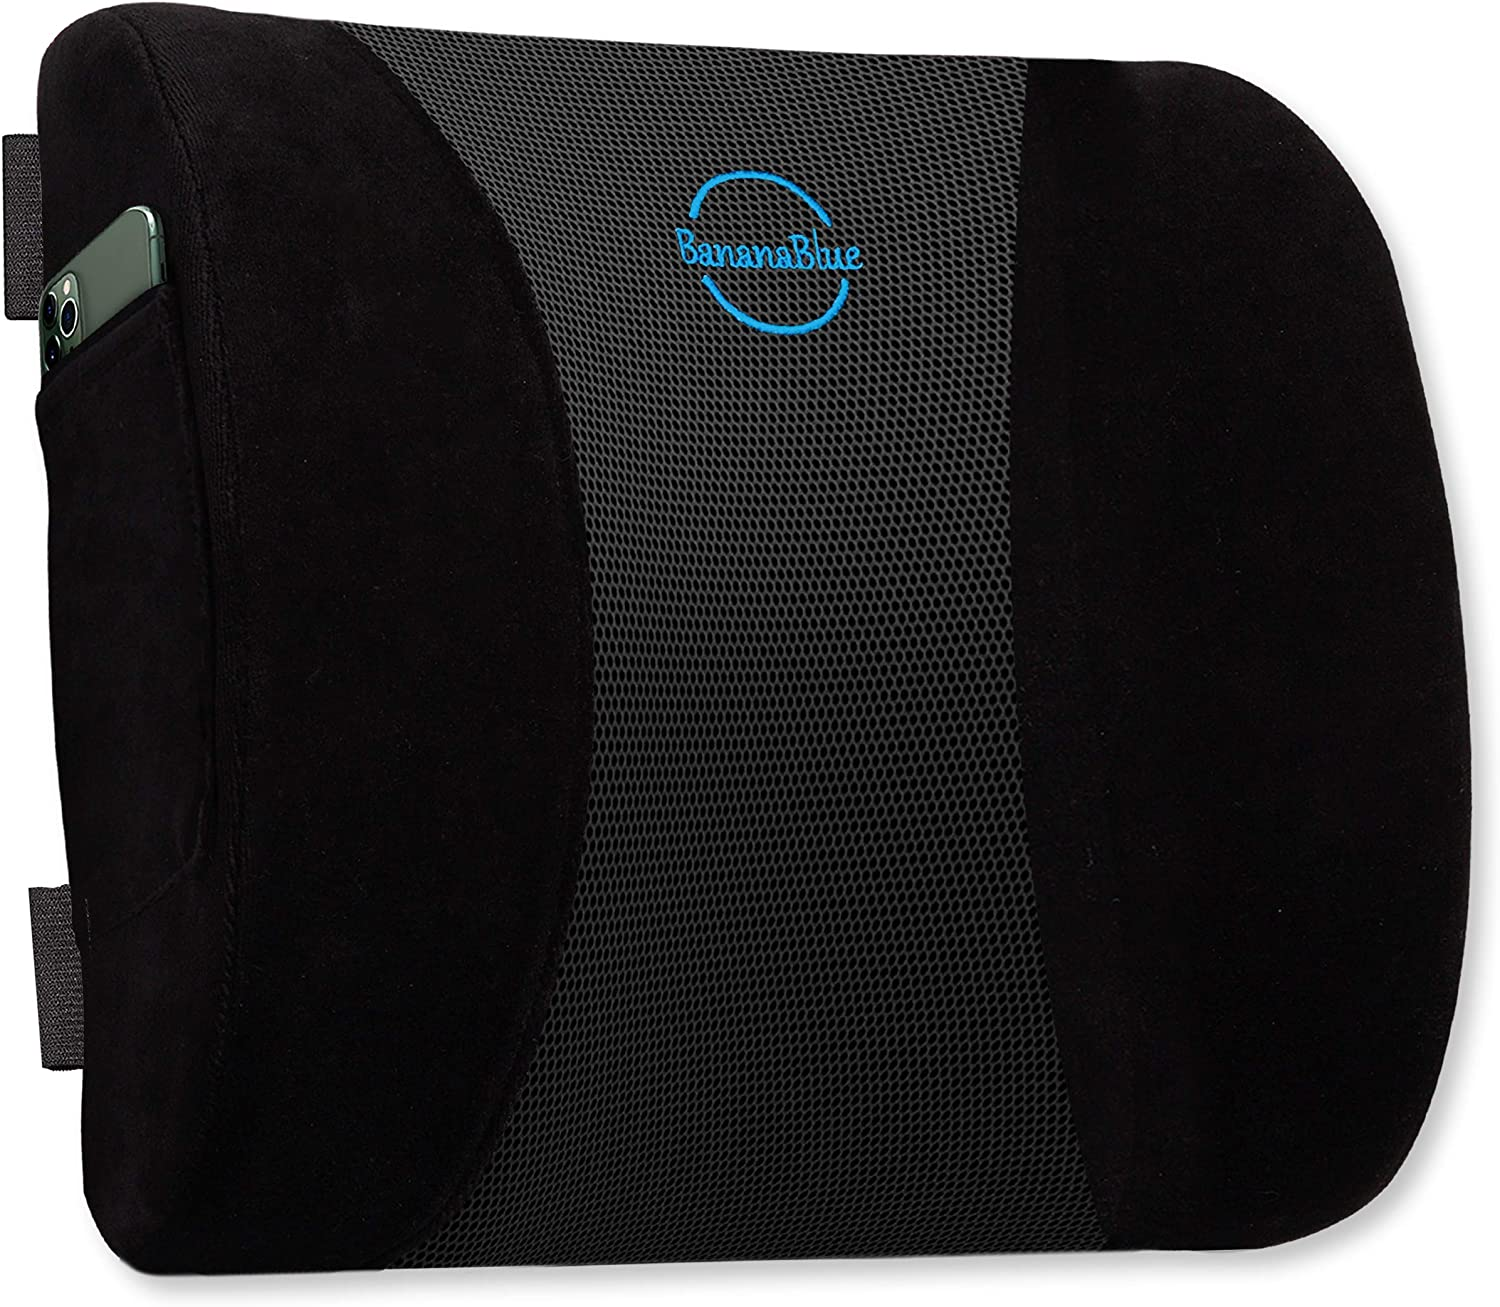 Ergonomic Back Cushion - 100% Memory Foam Lumbar Support Pillow for Car, Computer and Desk Chairs - Relieves Muscle Tension, Lower Back Pain, and Improves Posture.